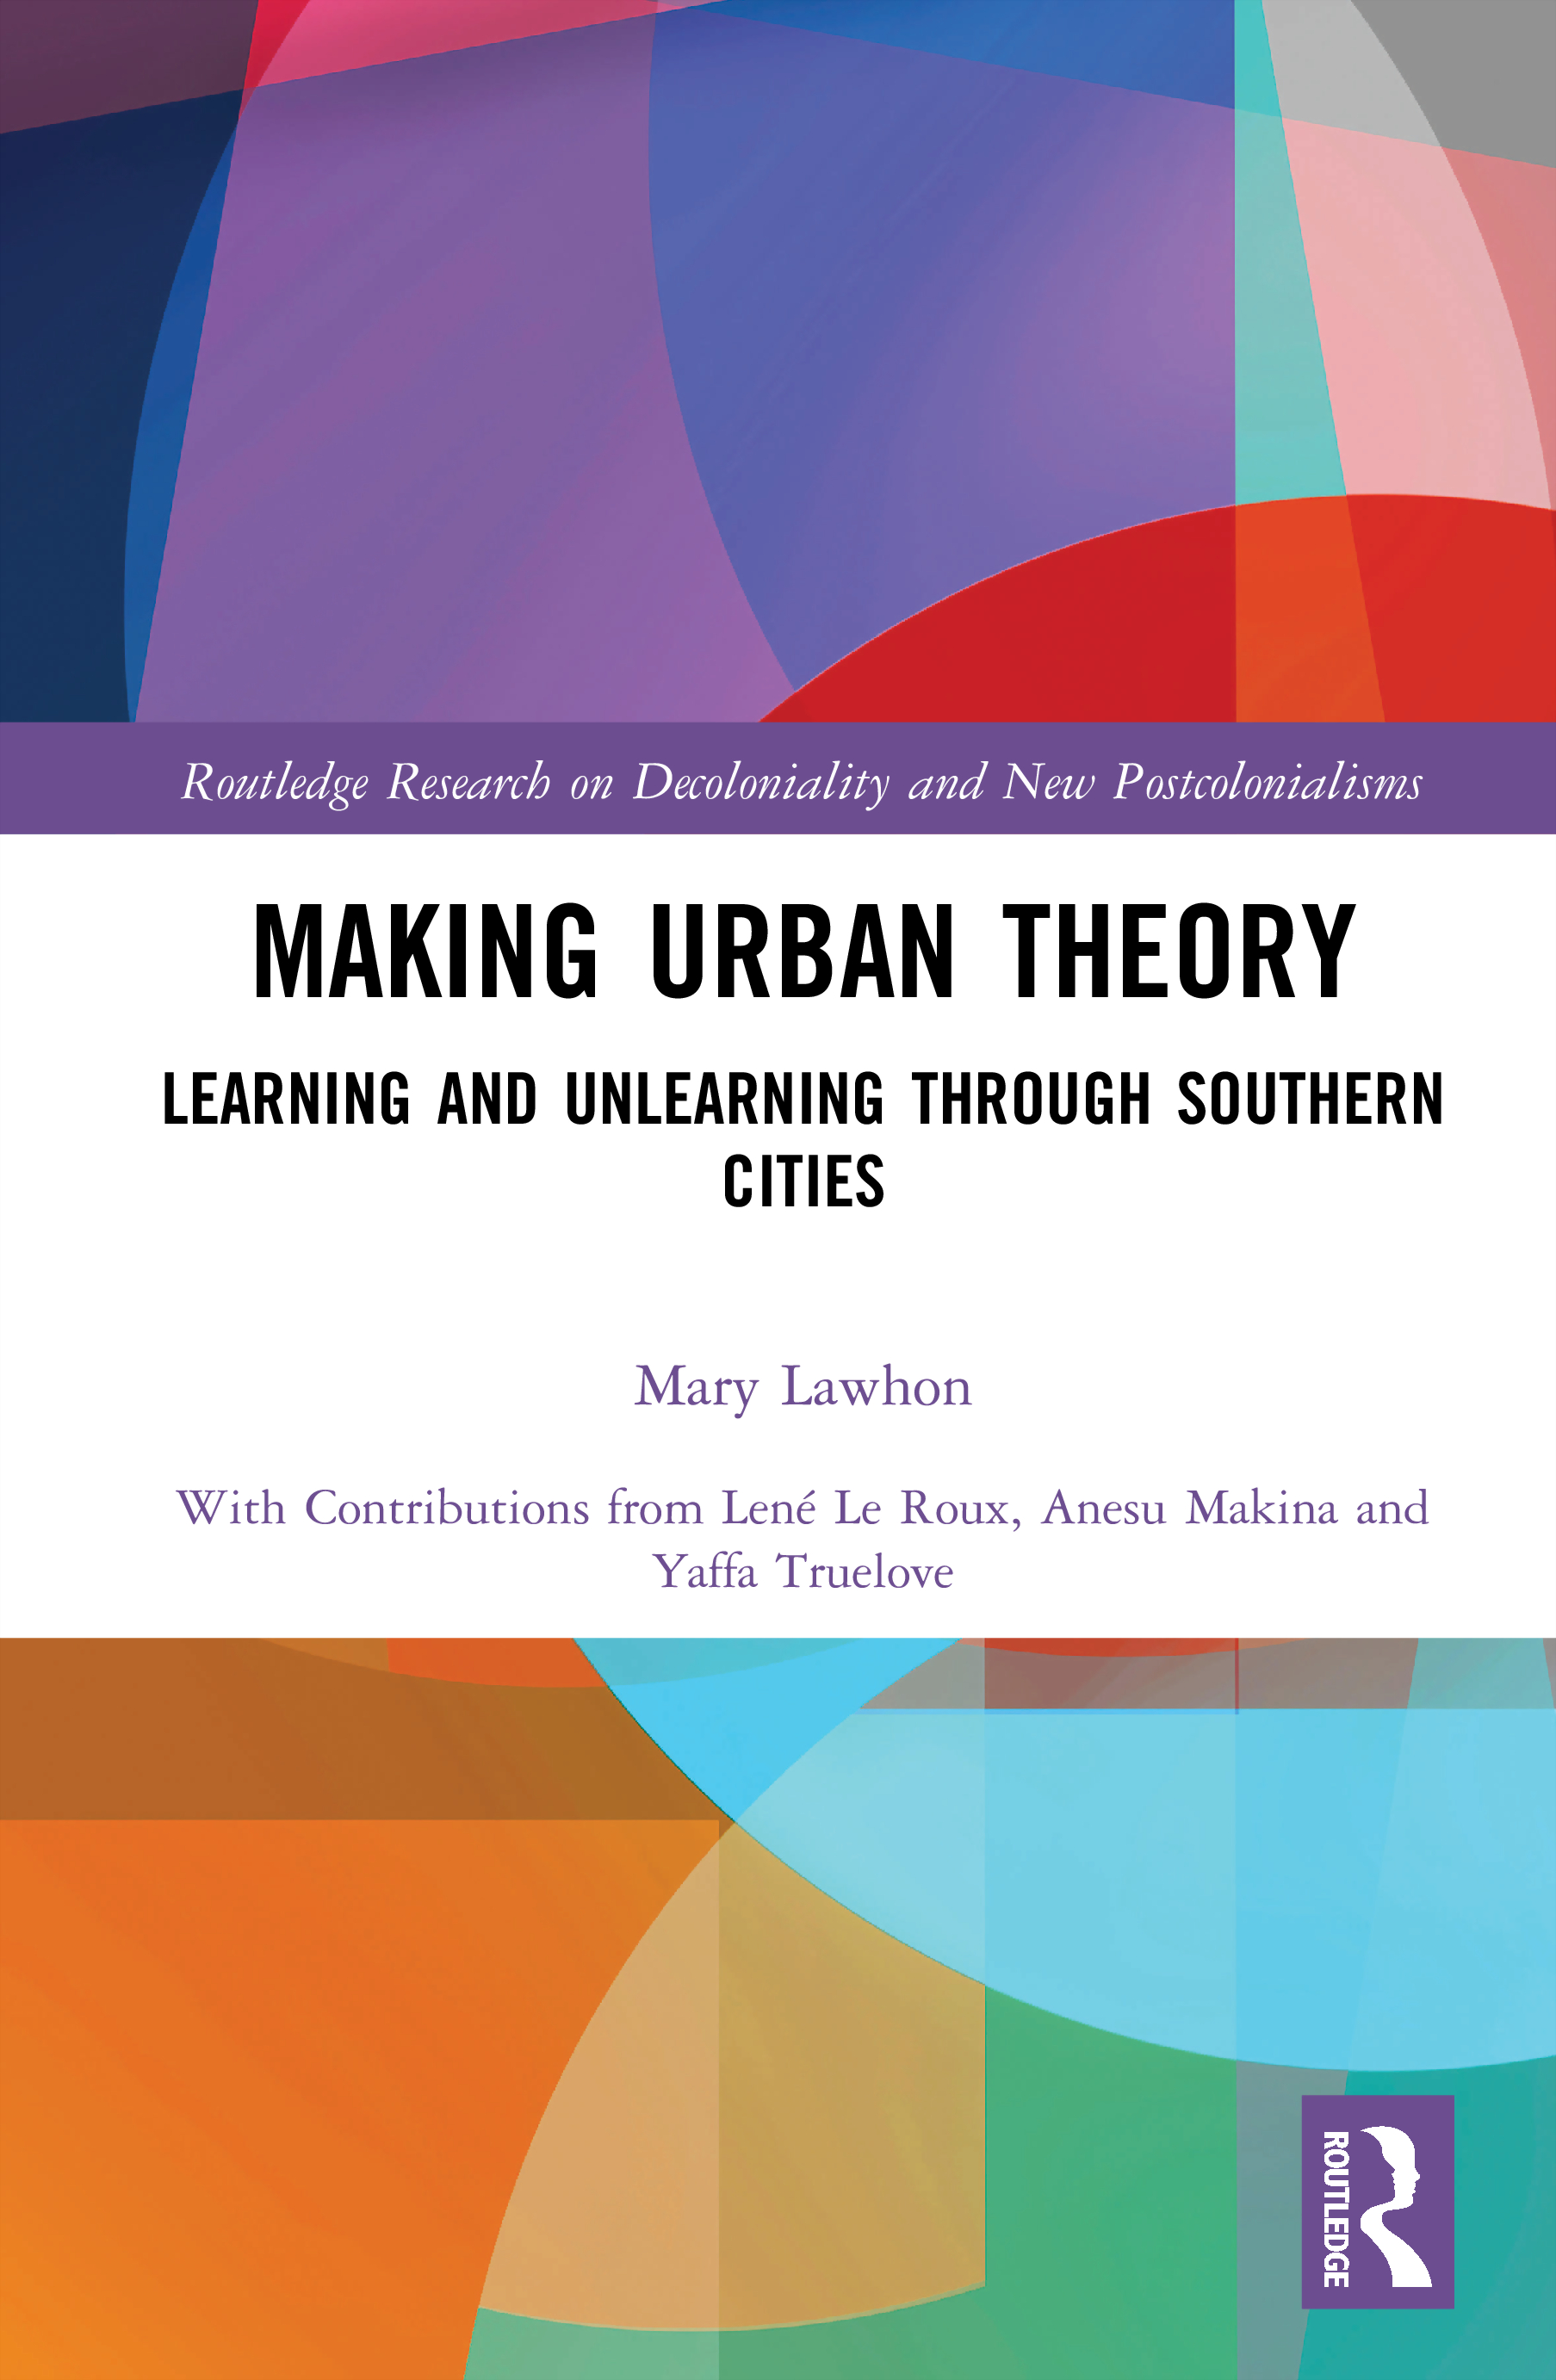 Making Urban Theory: Learning and Unlearning through Southern Cities book cover